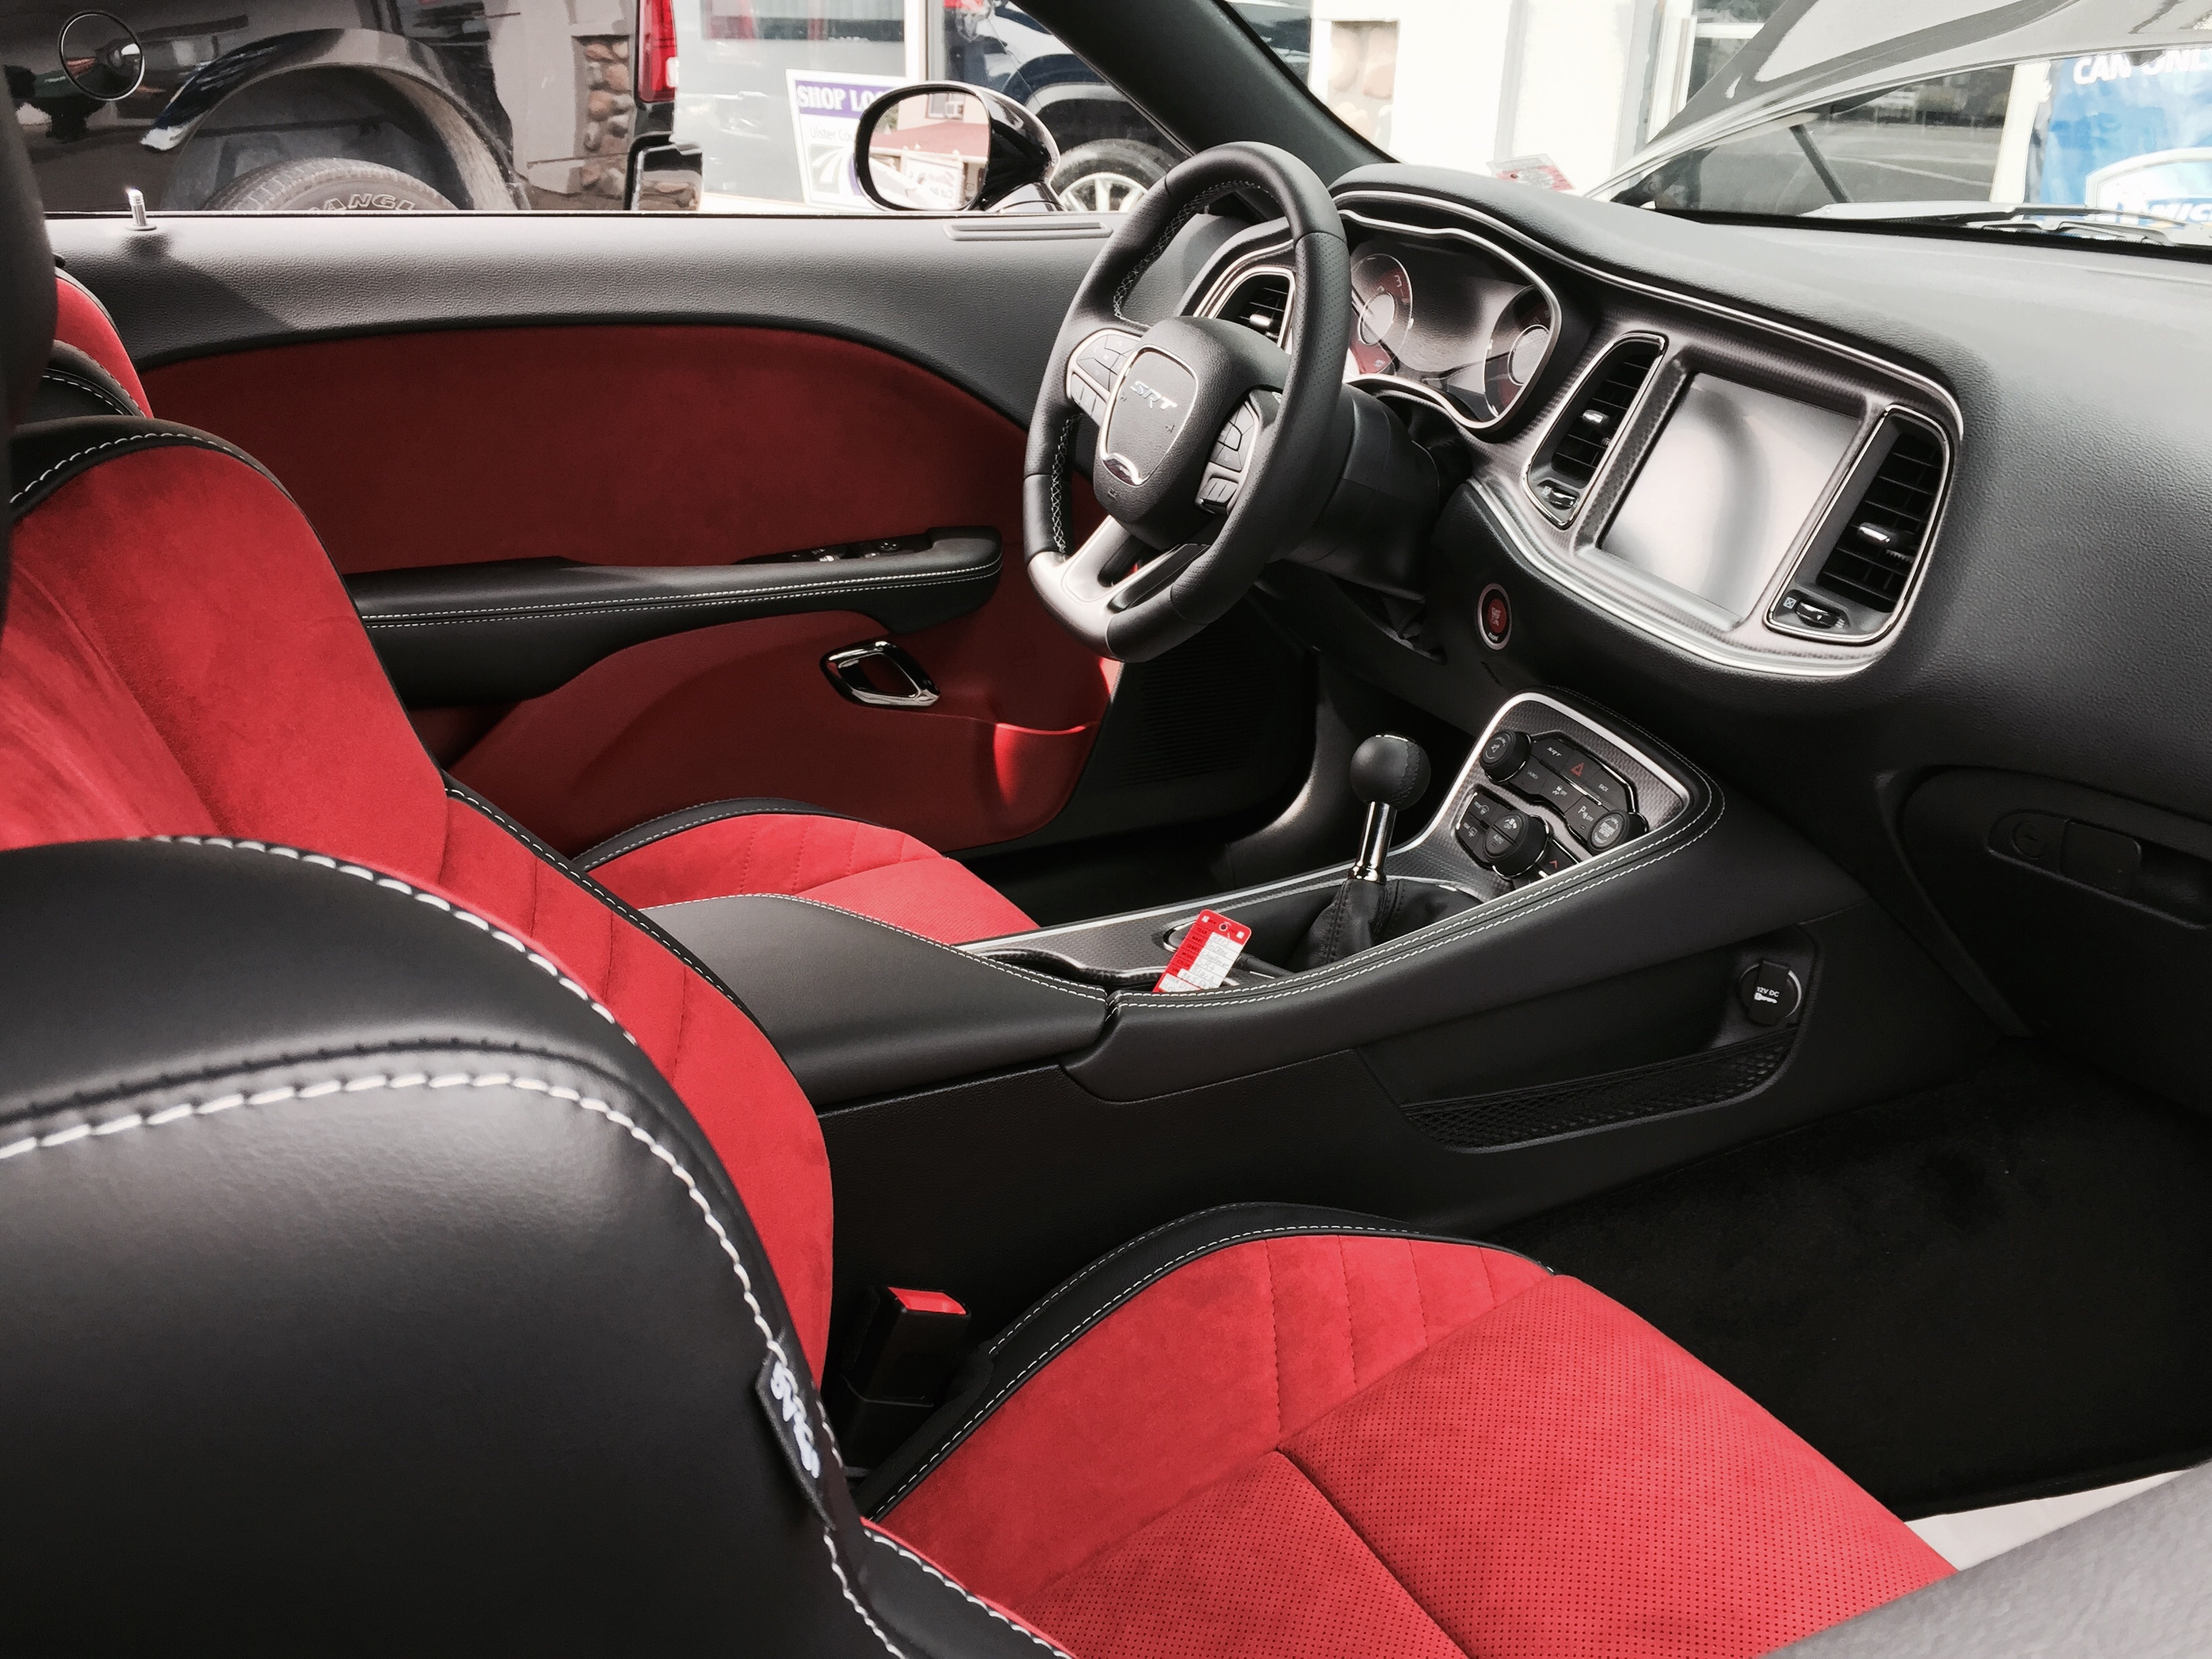 Cozy Leather Seats For Dodge Challenger Aratorn Sport Cars